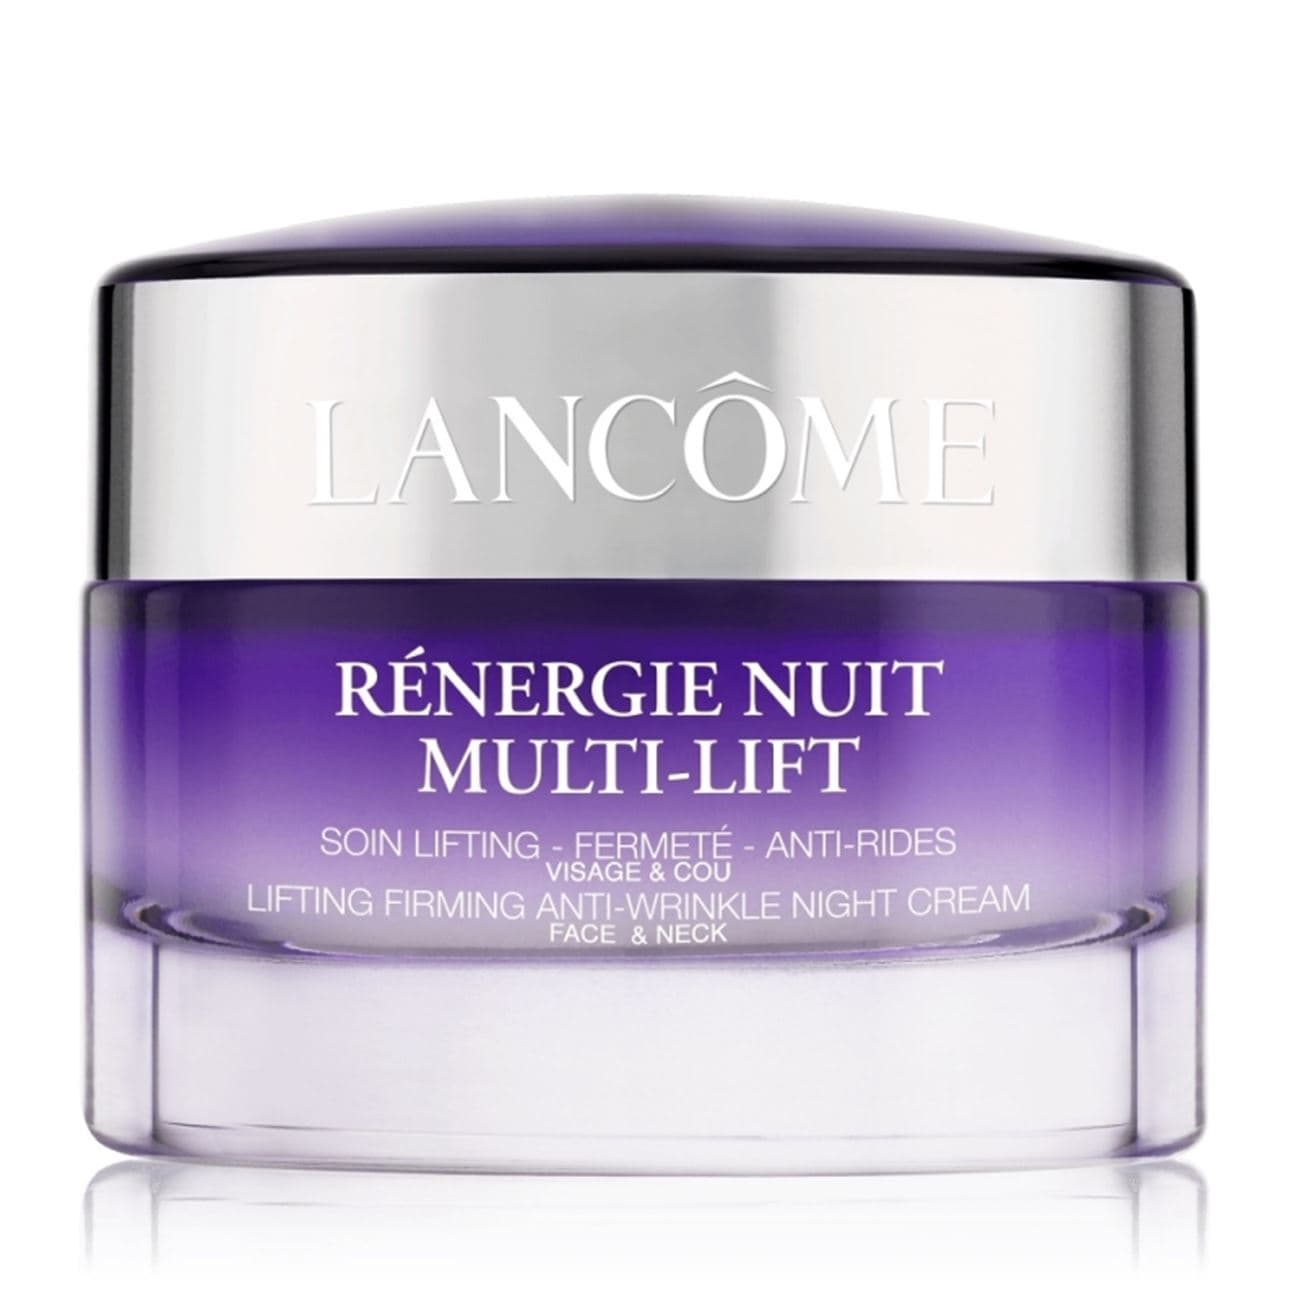 Renergie  Multi Lift Nuit